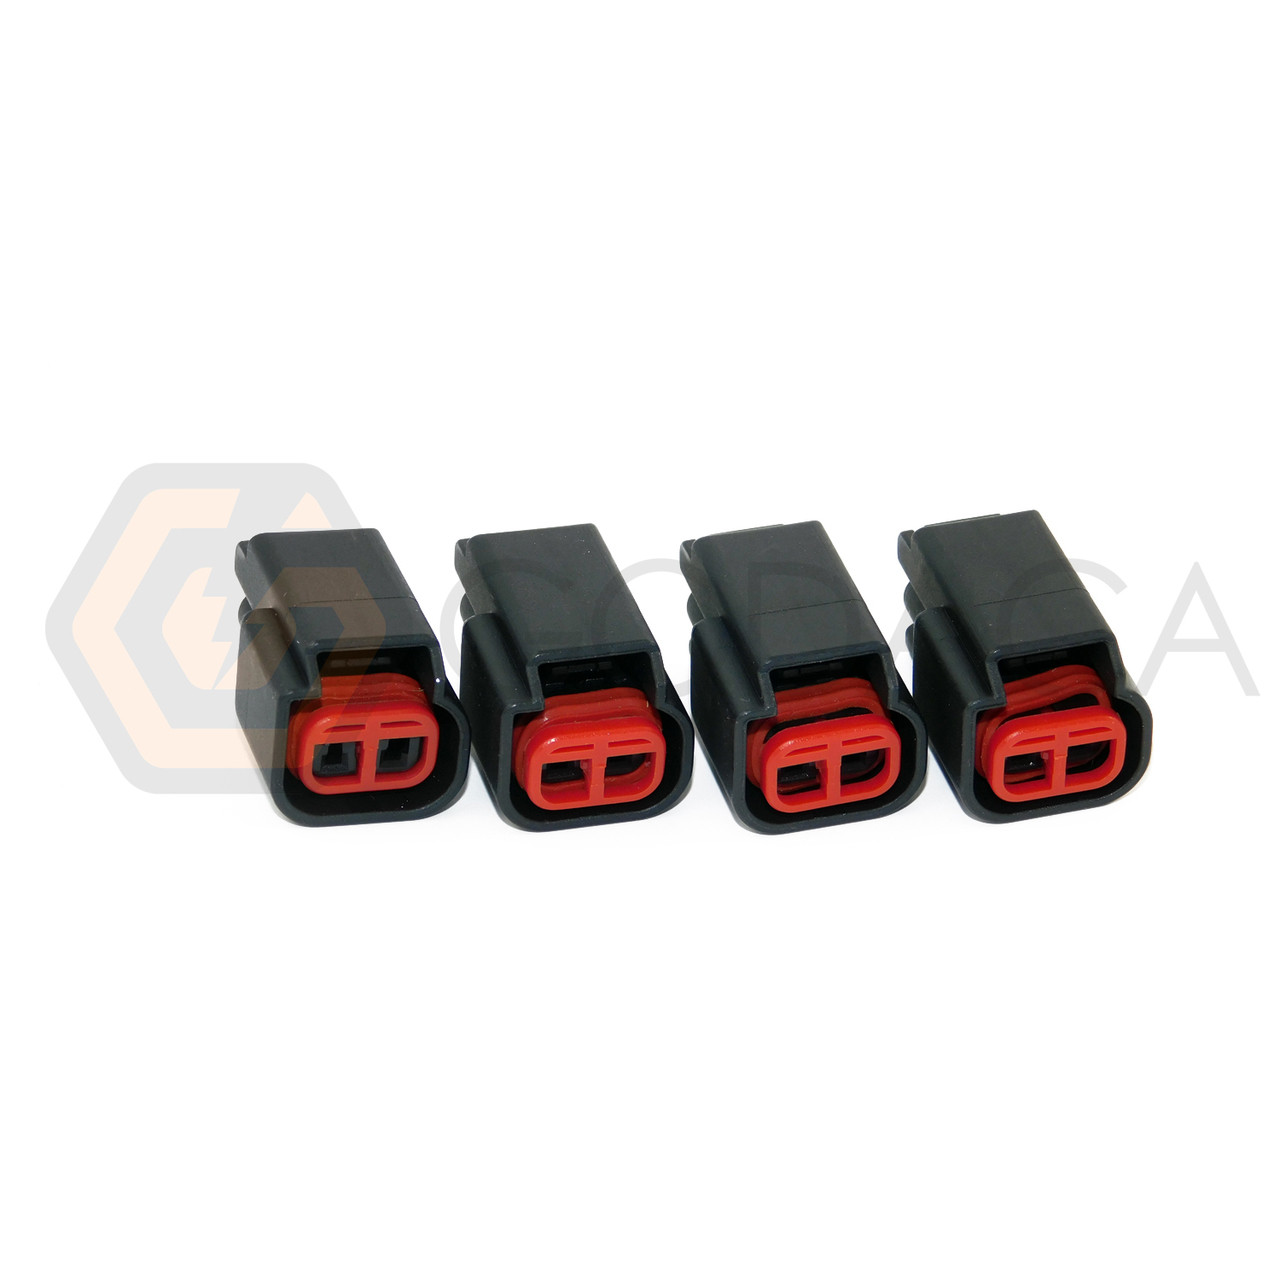 medium resolution of 4x connector 2 way 2 pin for ford mazda ignition coil wpt 986 w out wire godaca llc